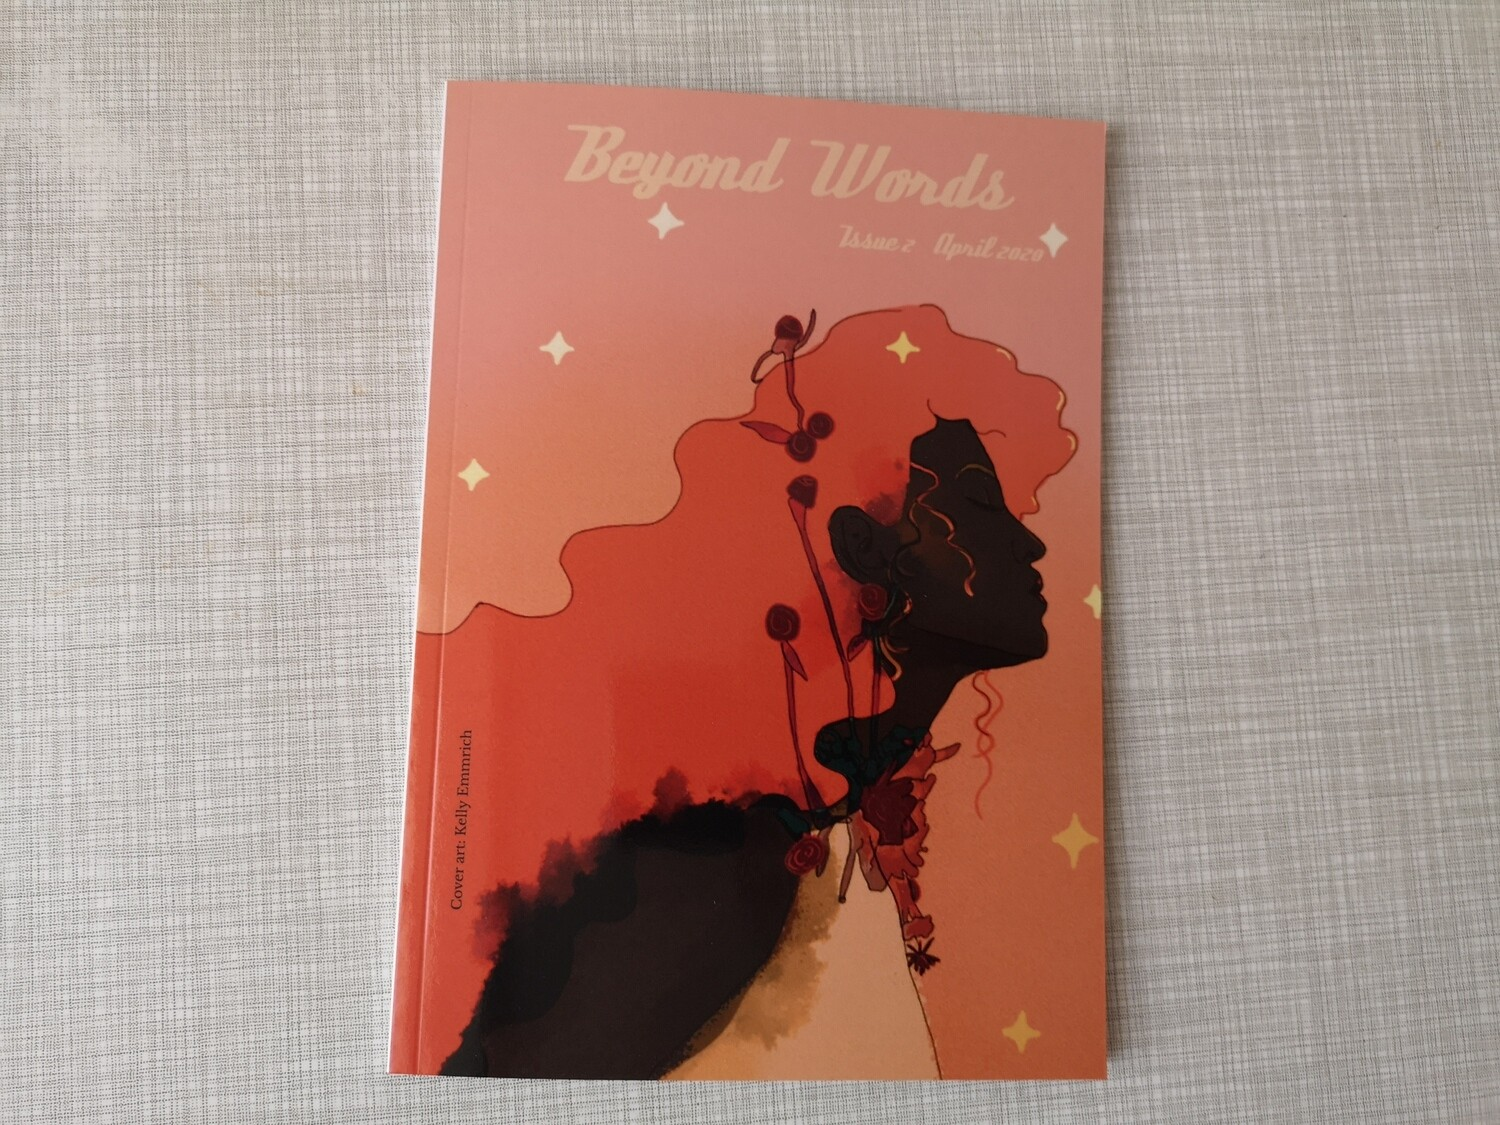 Beyond Words Magazine, Issue 2, April 2020